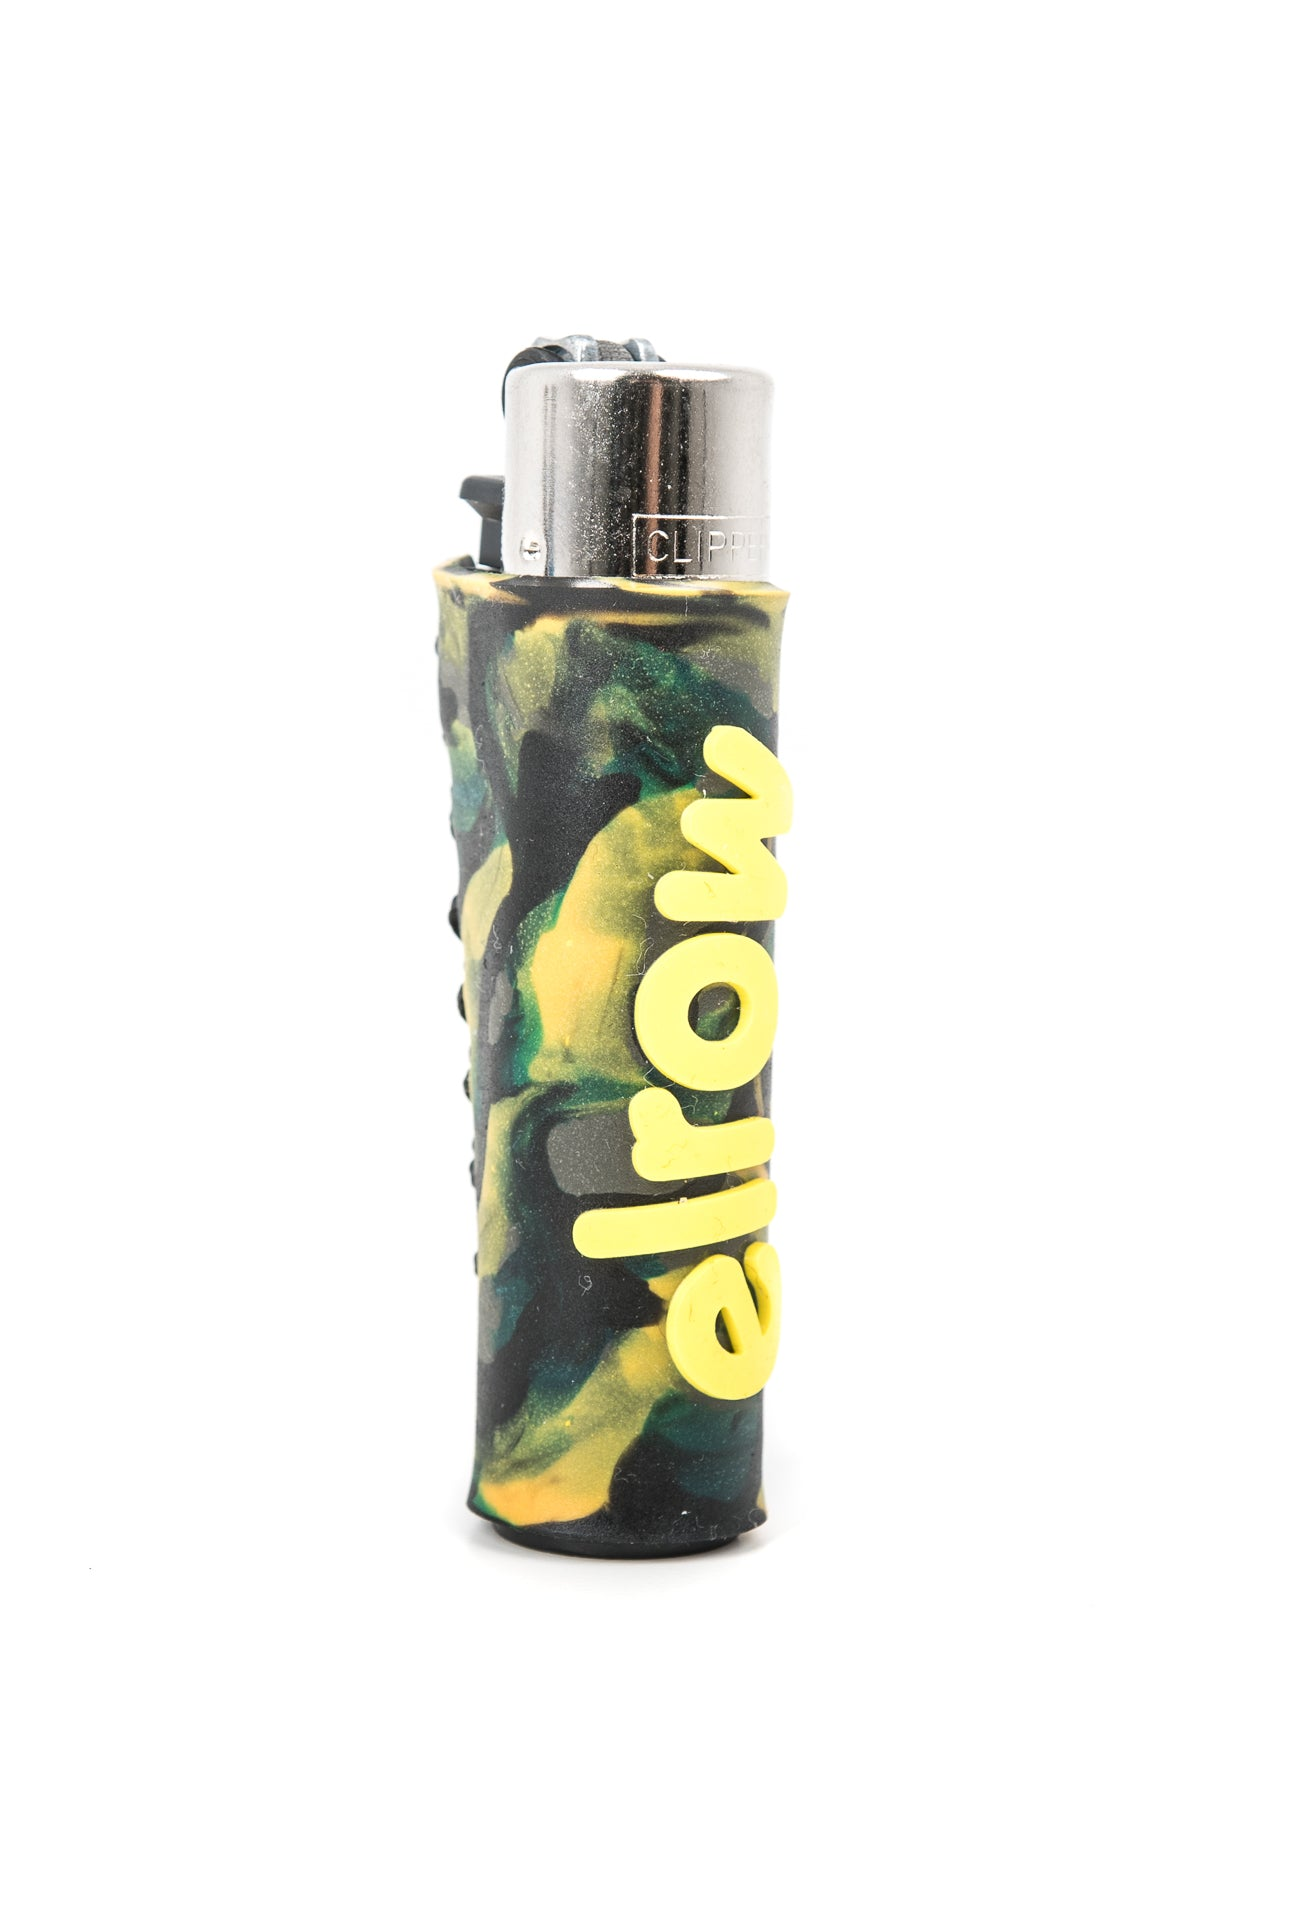 Elrow green camouflage lighter